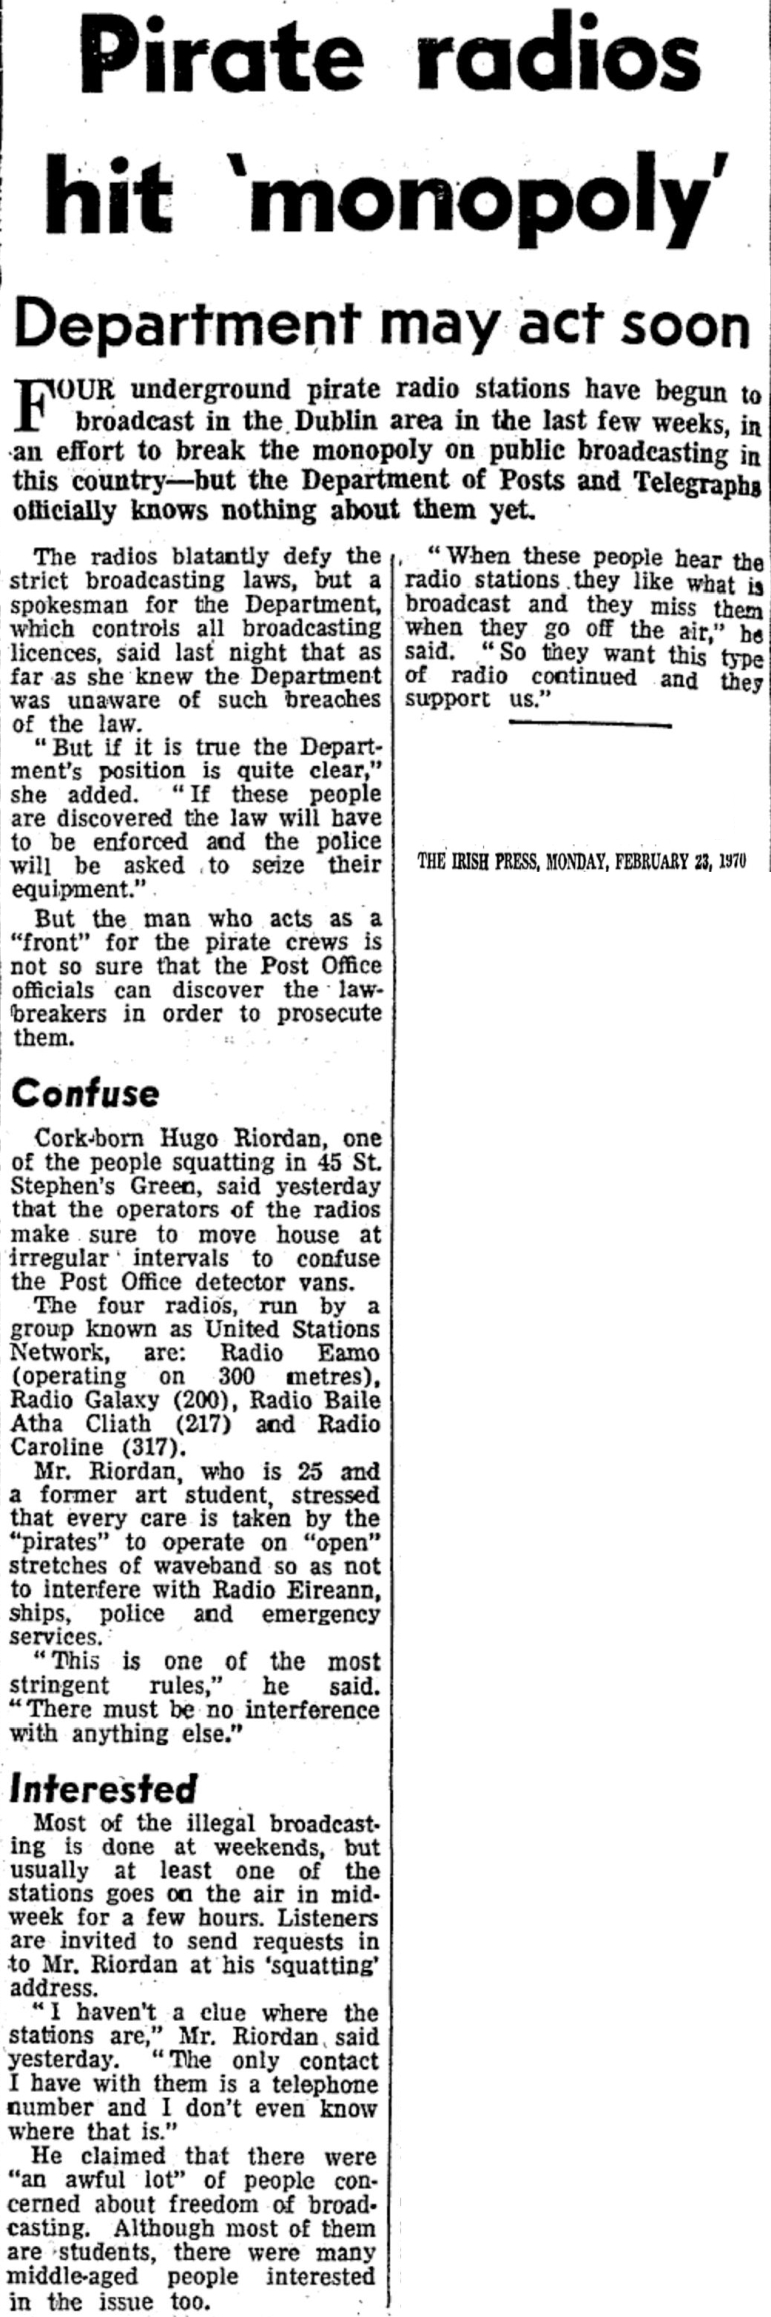 Pirate radios hit 'monopoly' was a headline from The Irish Press dated February 23rd 1970